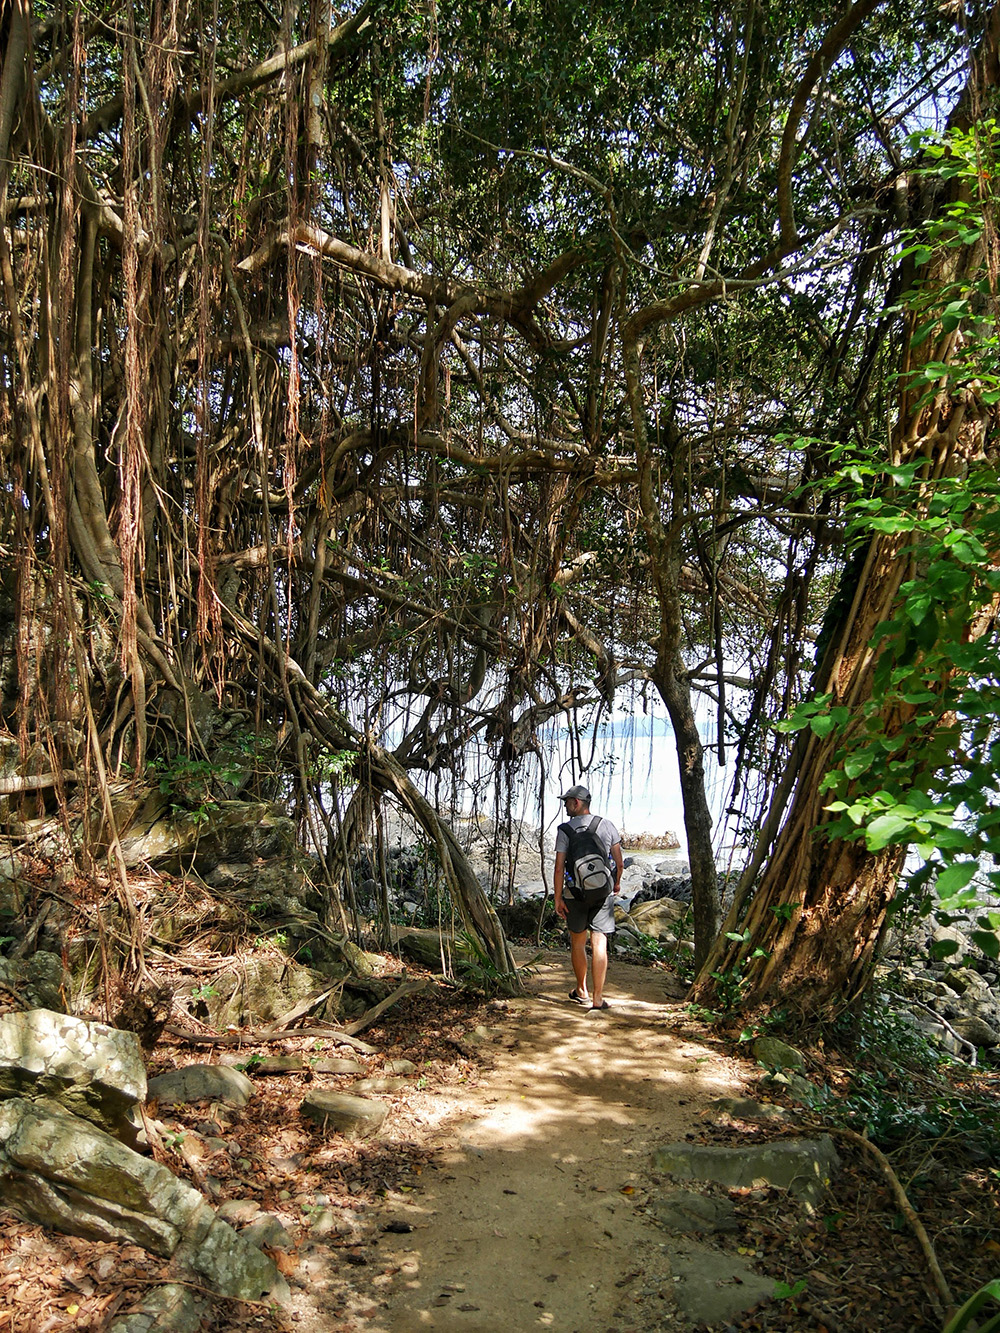 Walk under and through the lianas